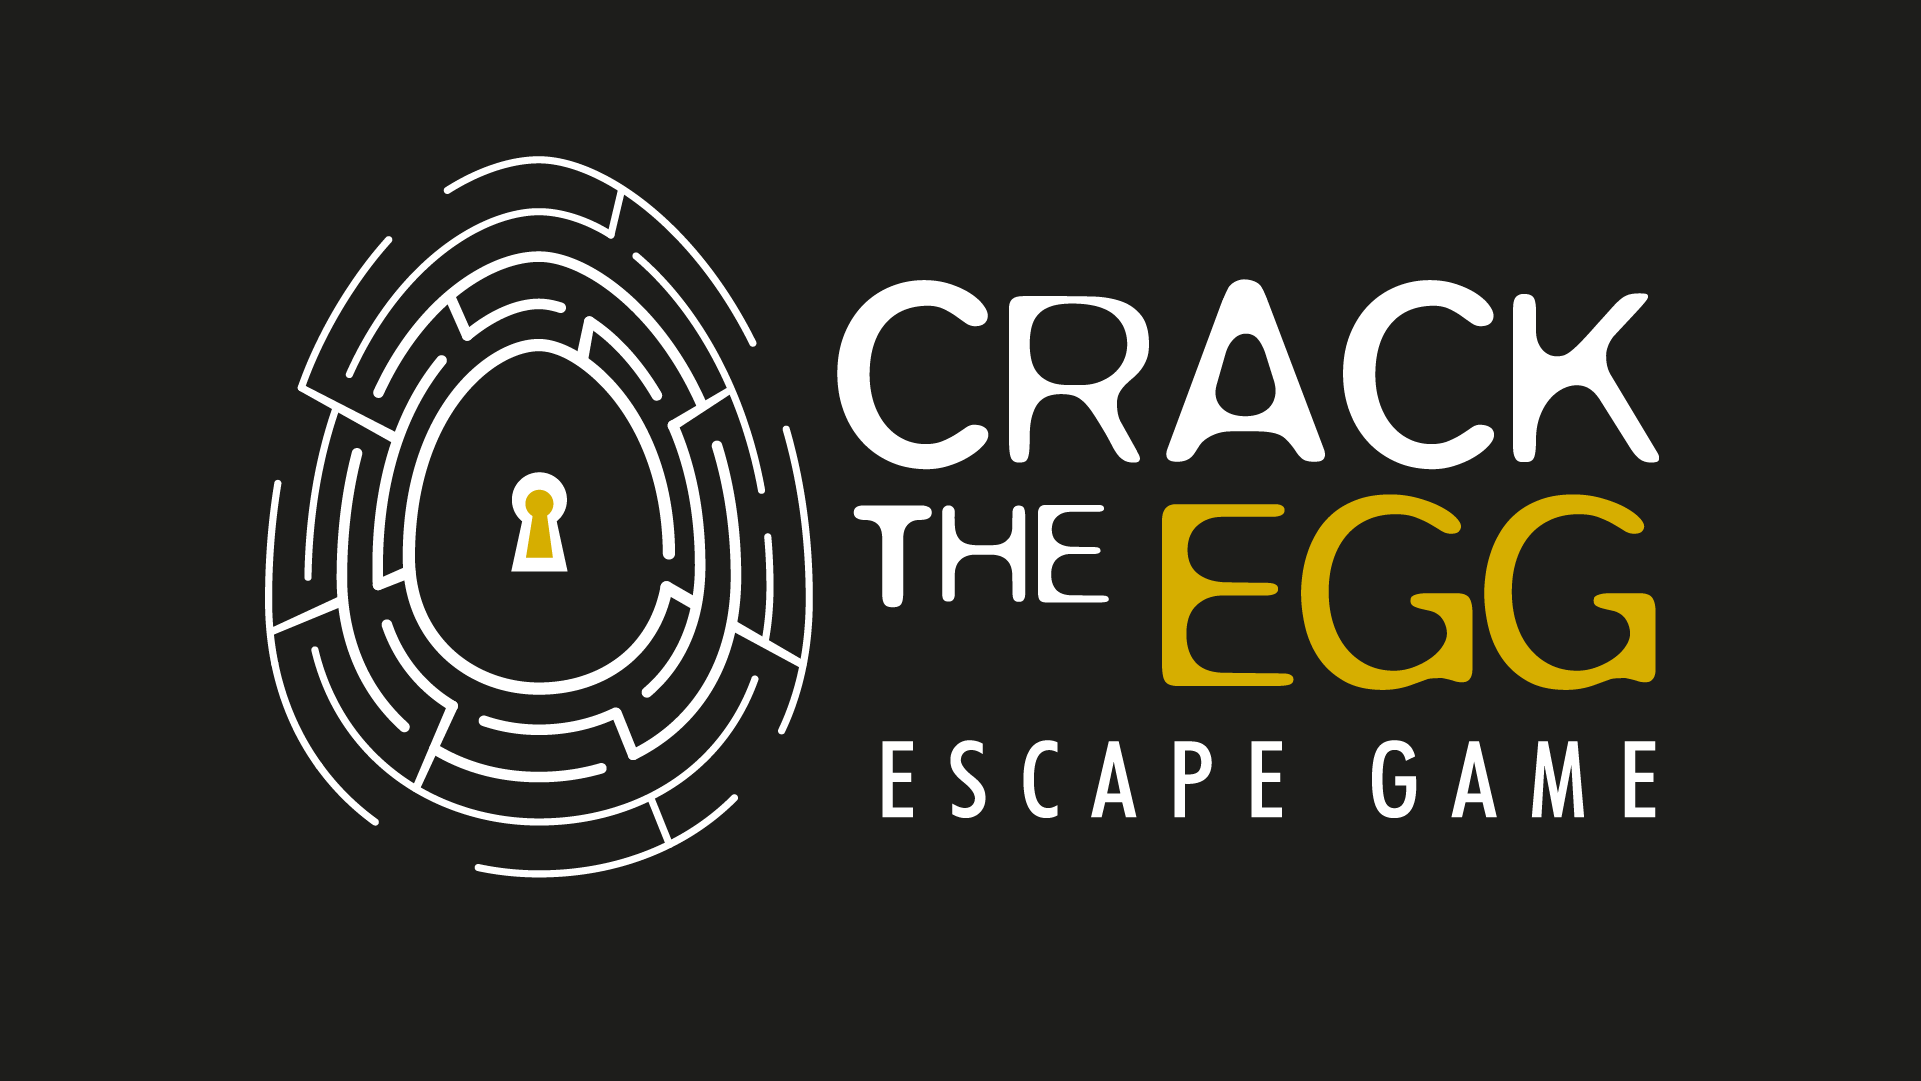 Crack The Egg Escape Game